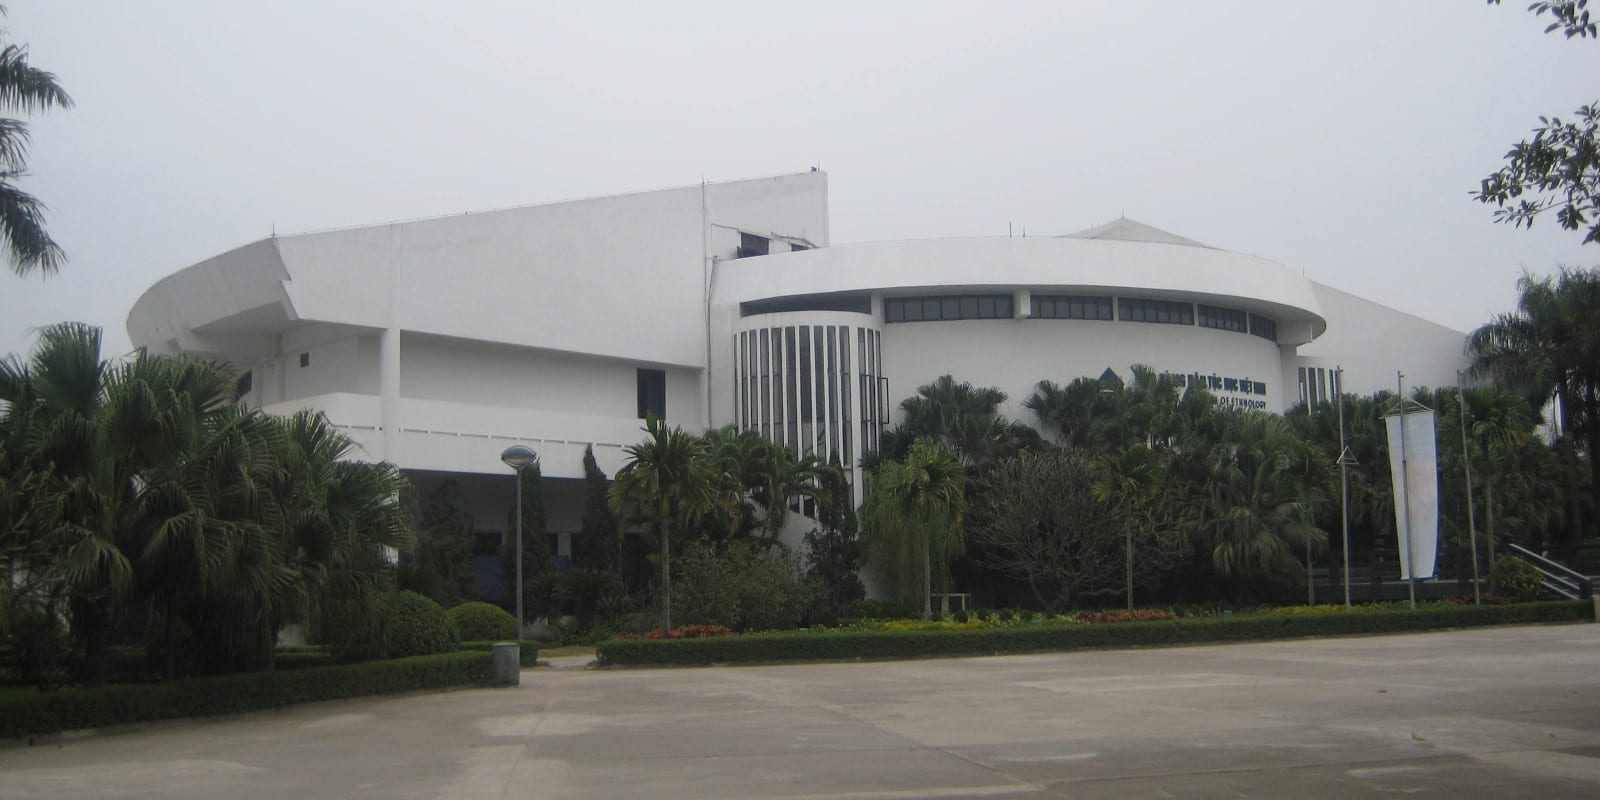 Image of the Trong Dong Building at the Vietnam Museum of Ethnology in Ha Noi